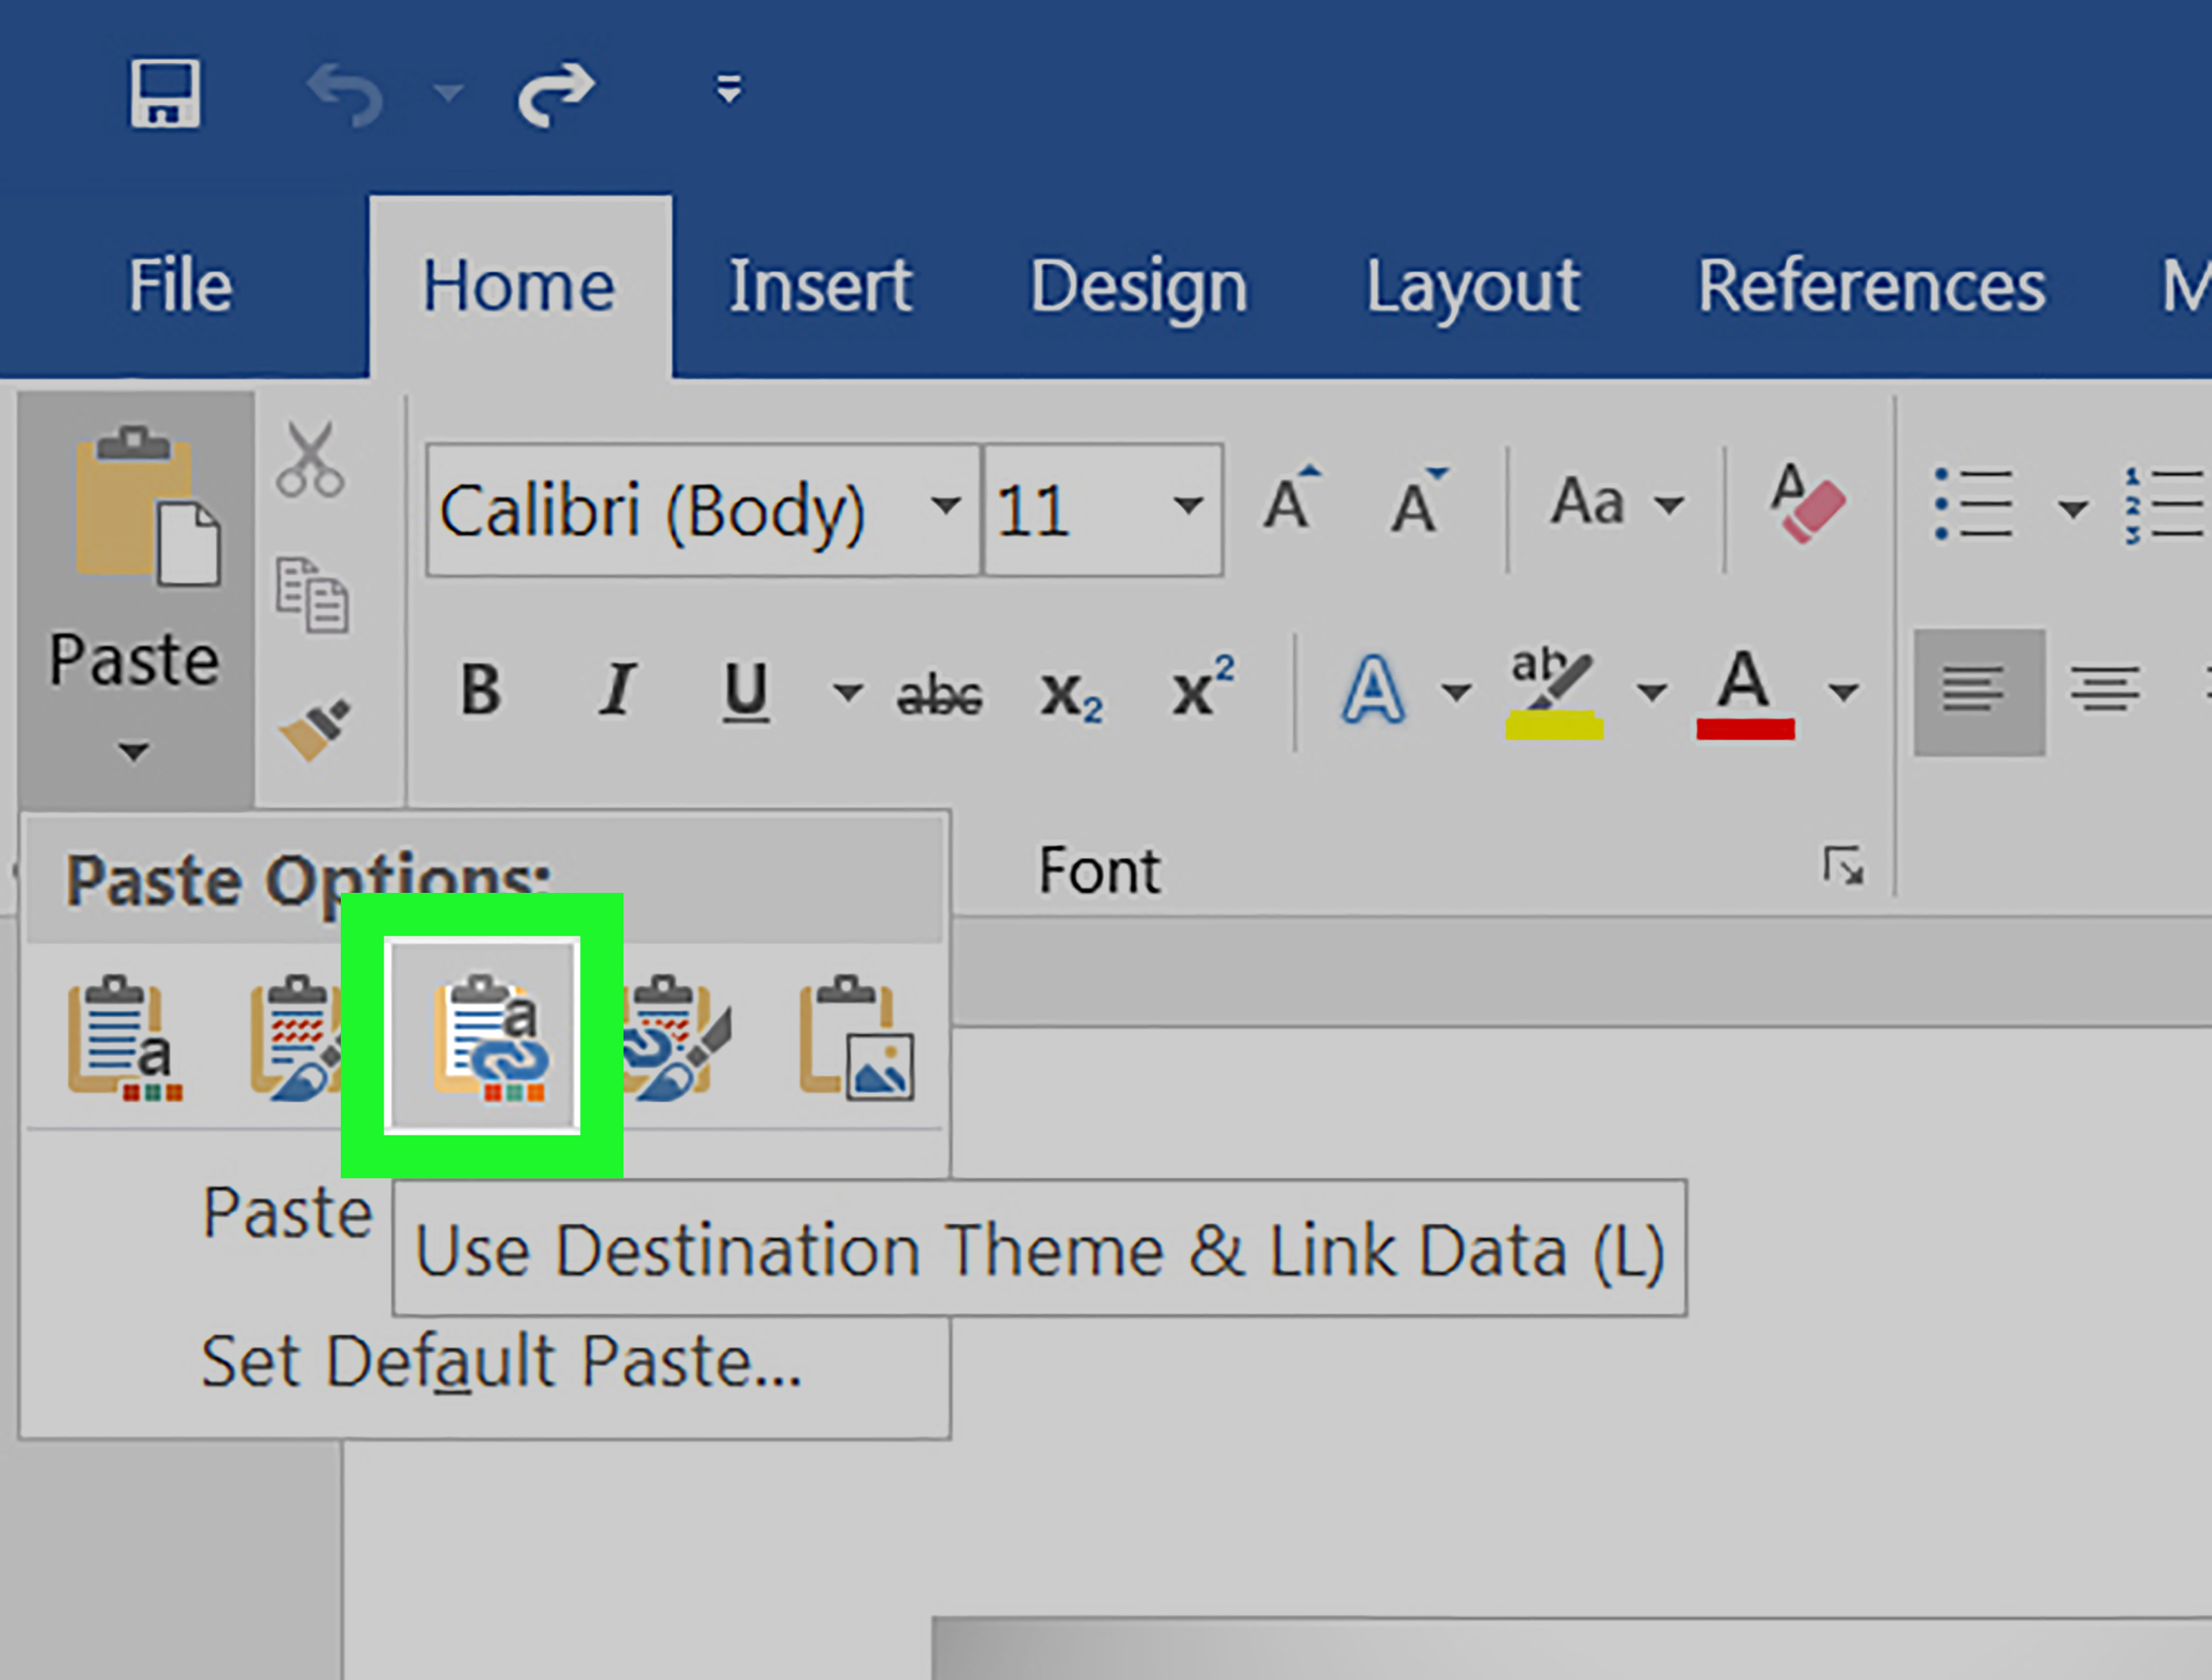 Excel Spreadsheet In Word Regarding How To Convert Excel To Word: 15 Steps With Pictures  Wikihow